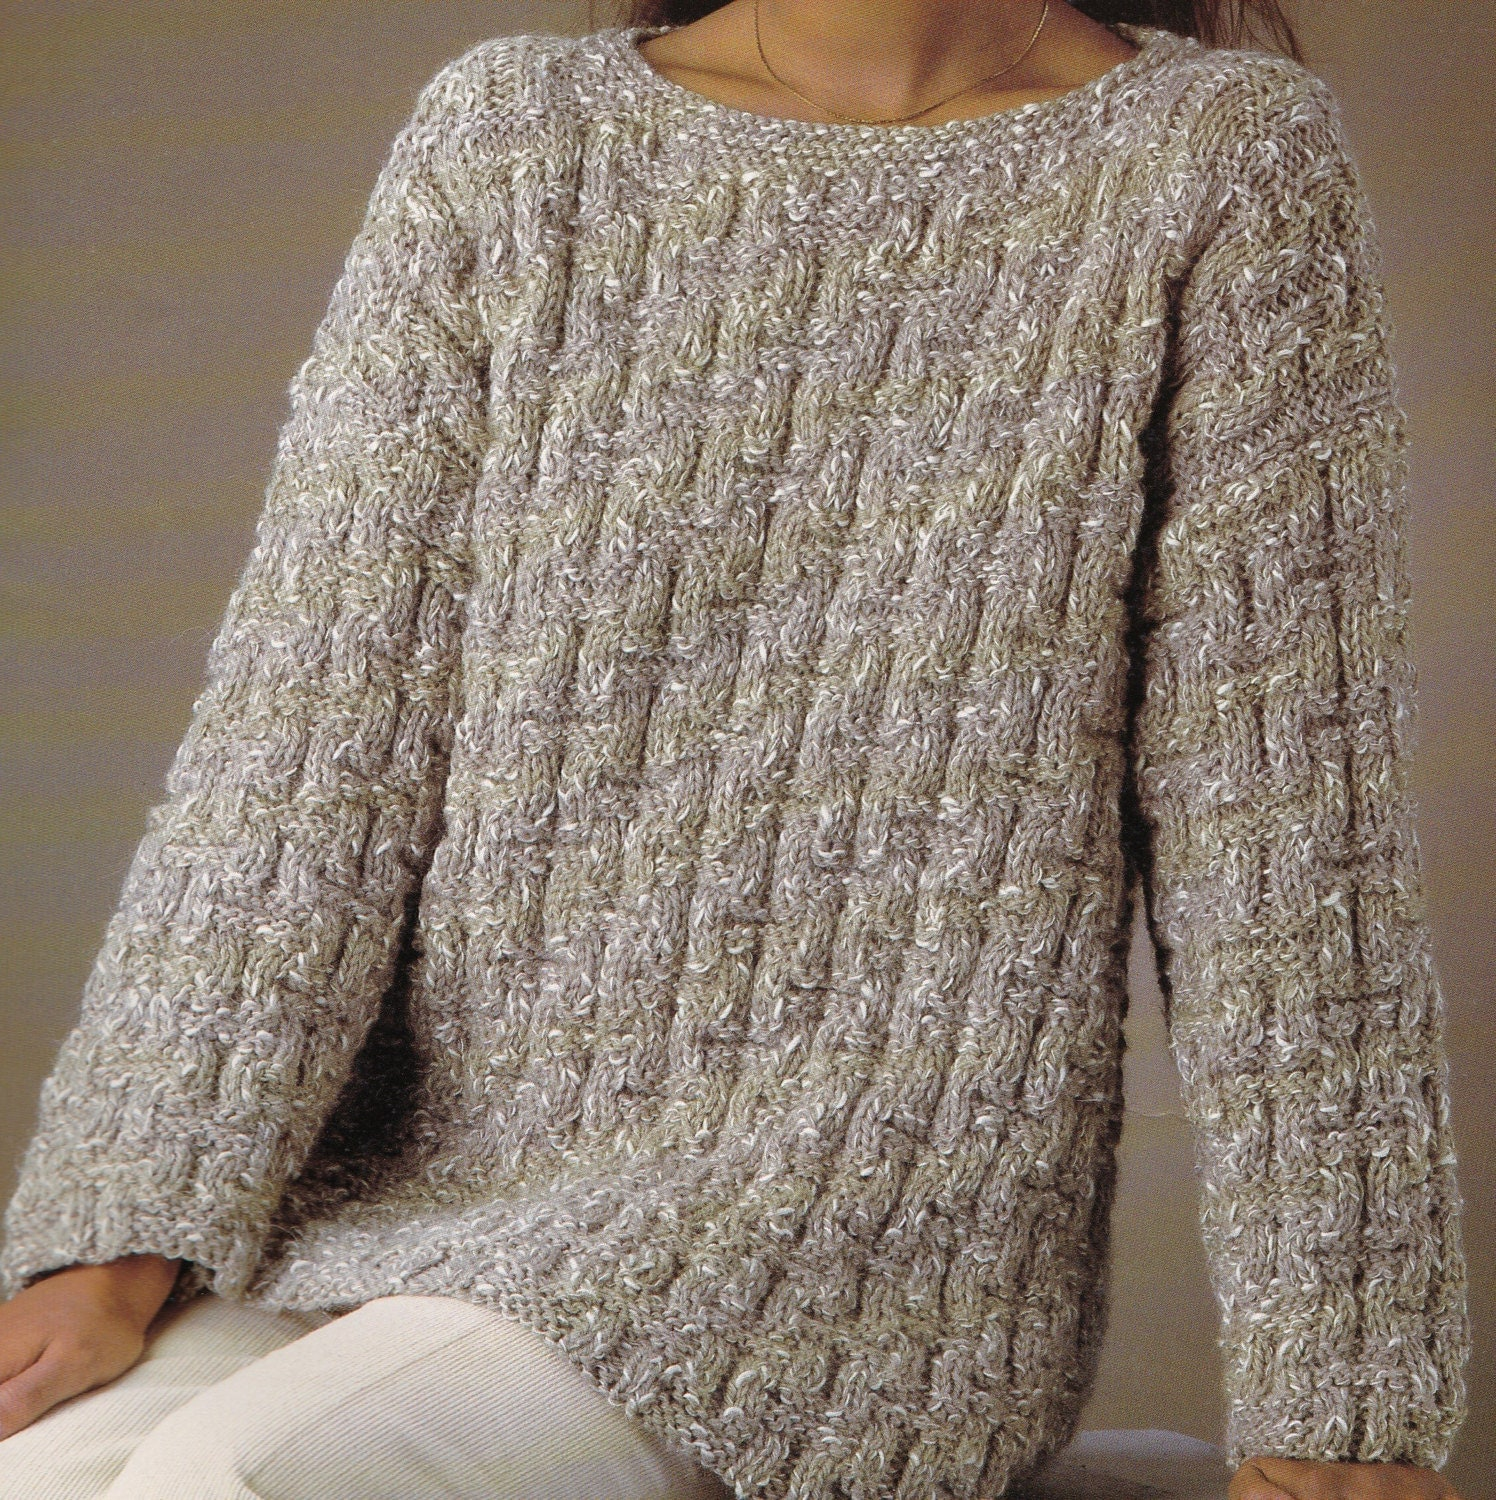 Knitting Pattern Jumper Ladies : Vintage Knitting Pattern Instructions to Make Ladies Chunky Jumper in 6 Sizes...